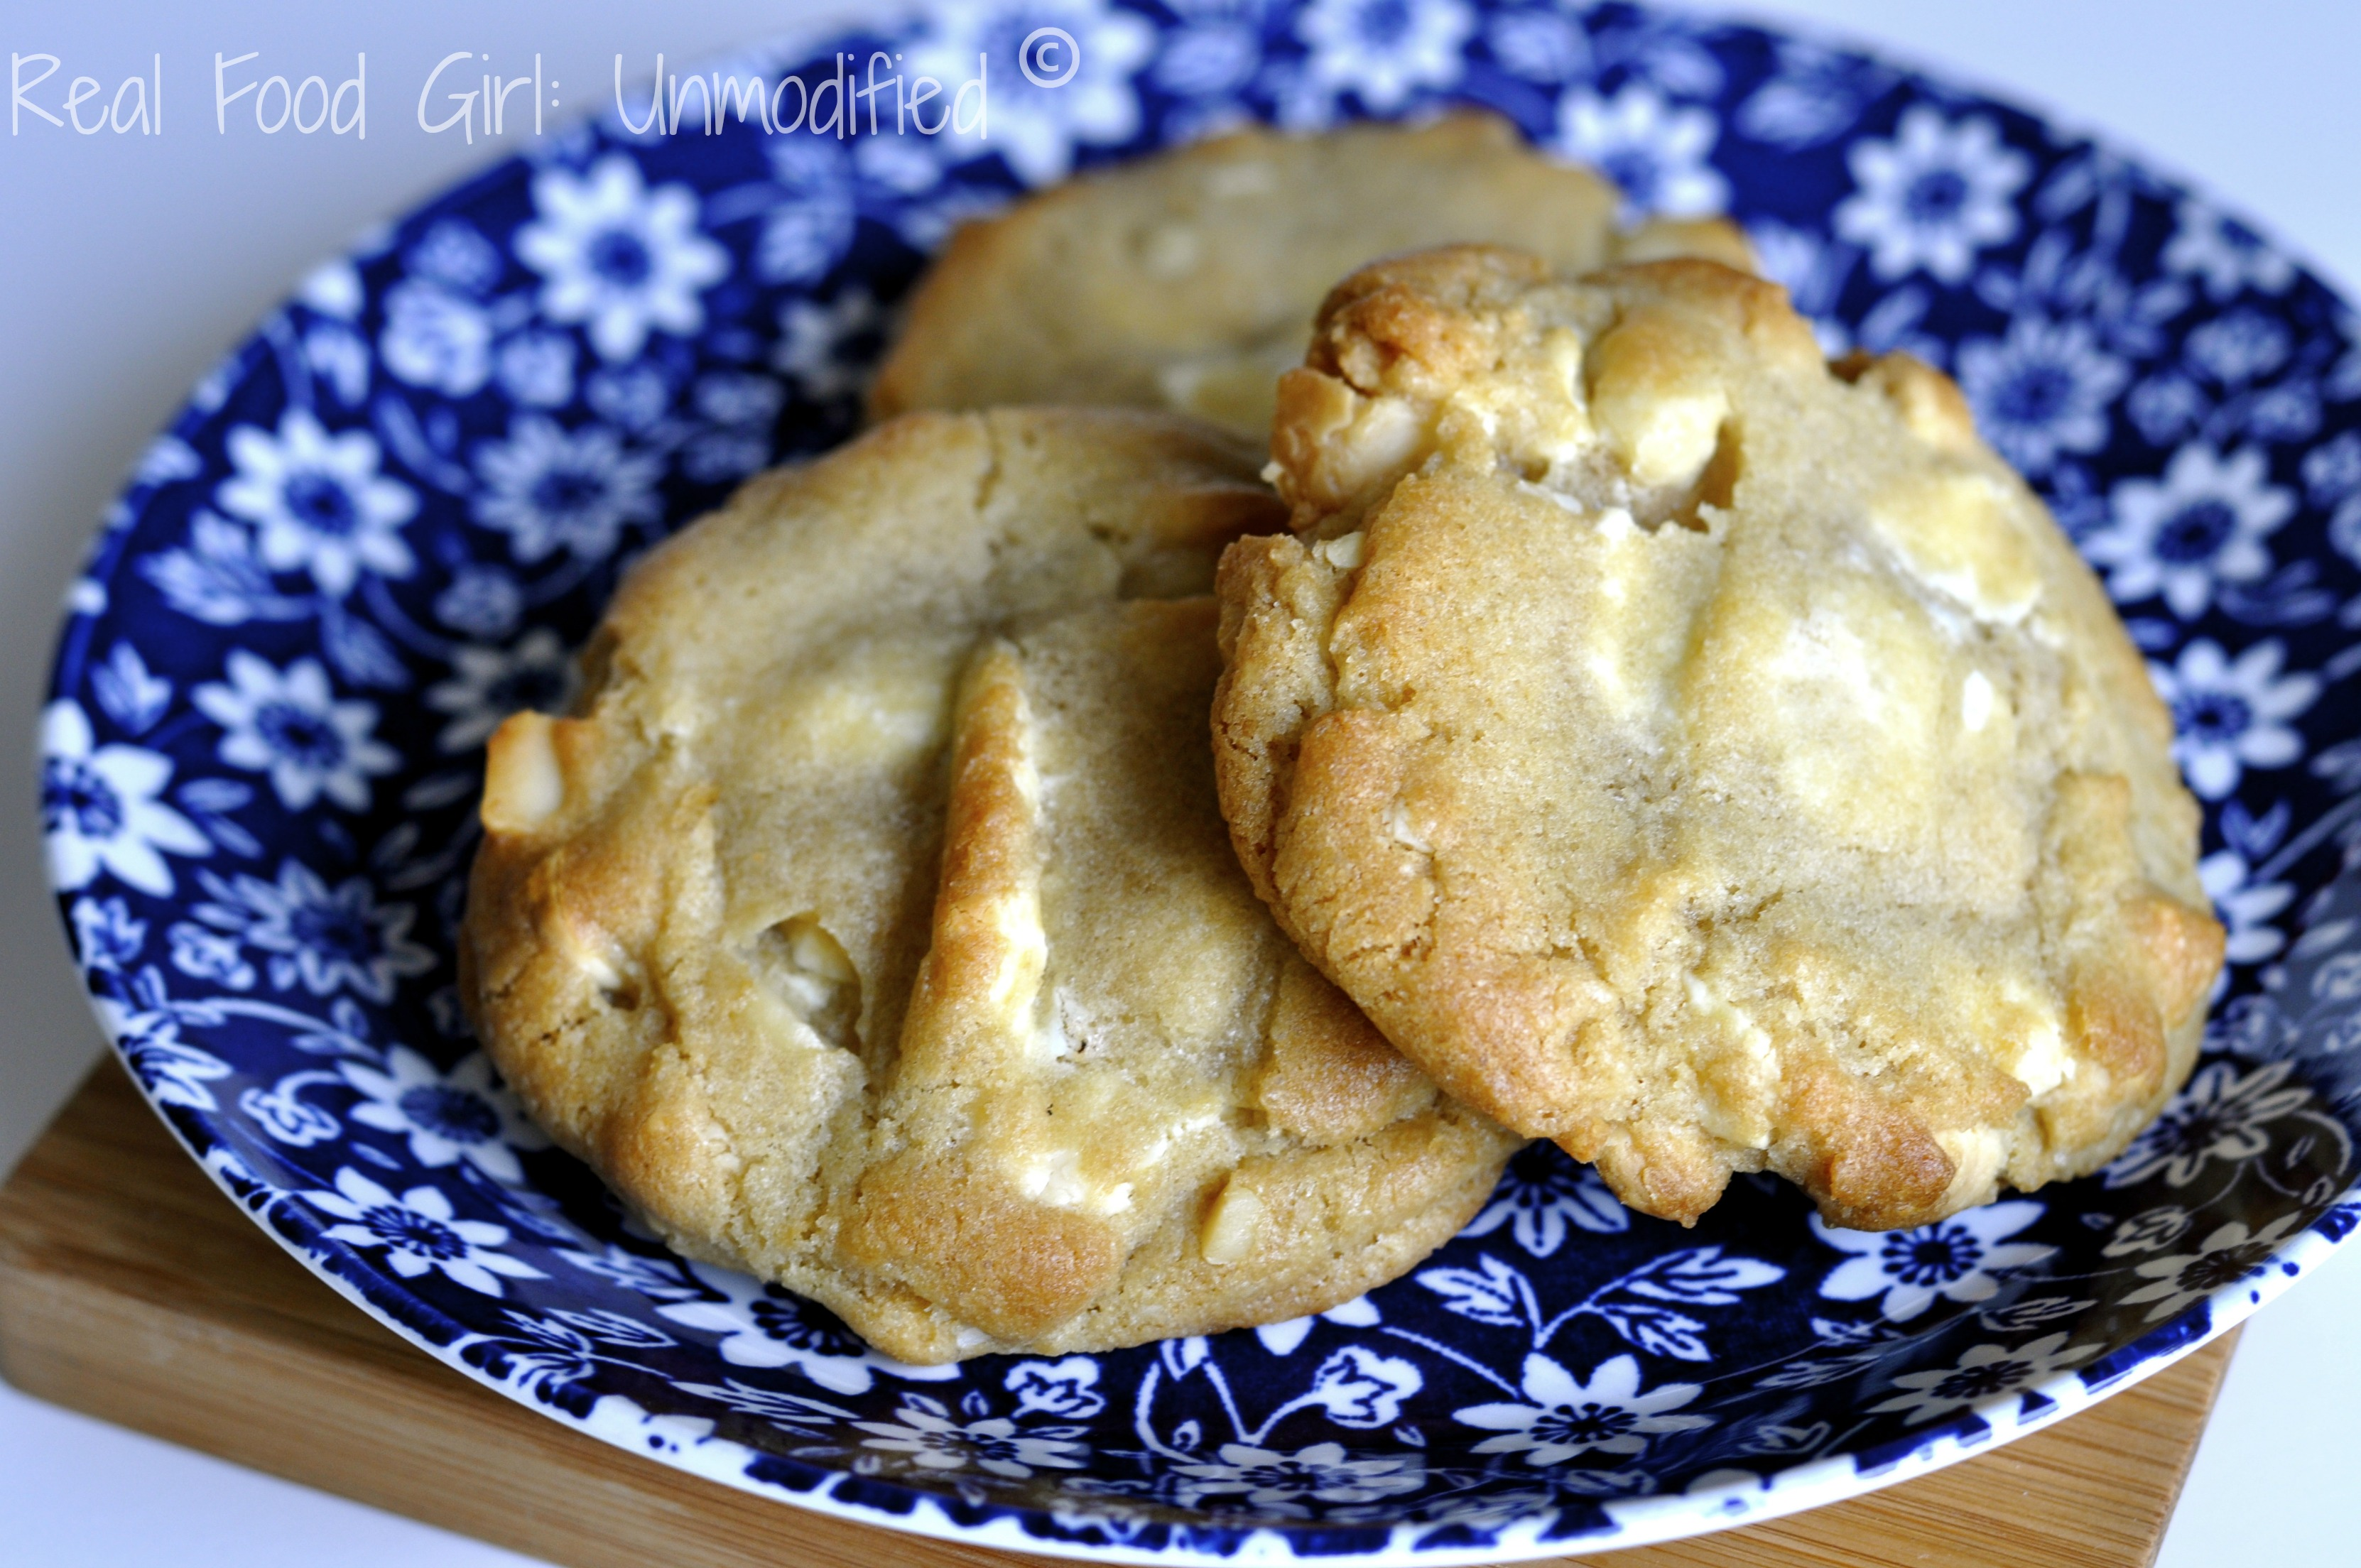 White Chocolate Macadamia Nut Cookies- Made with awesome non-GMO ingredients. Real Food Girl: Unmodified